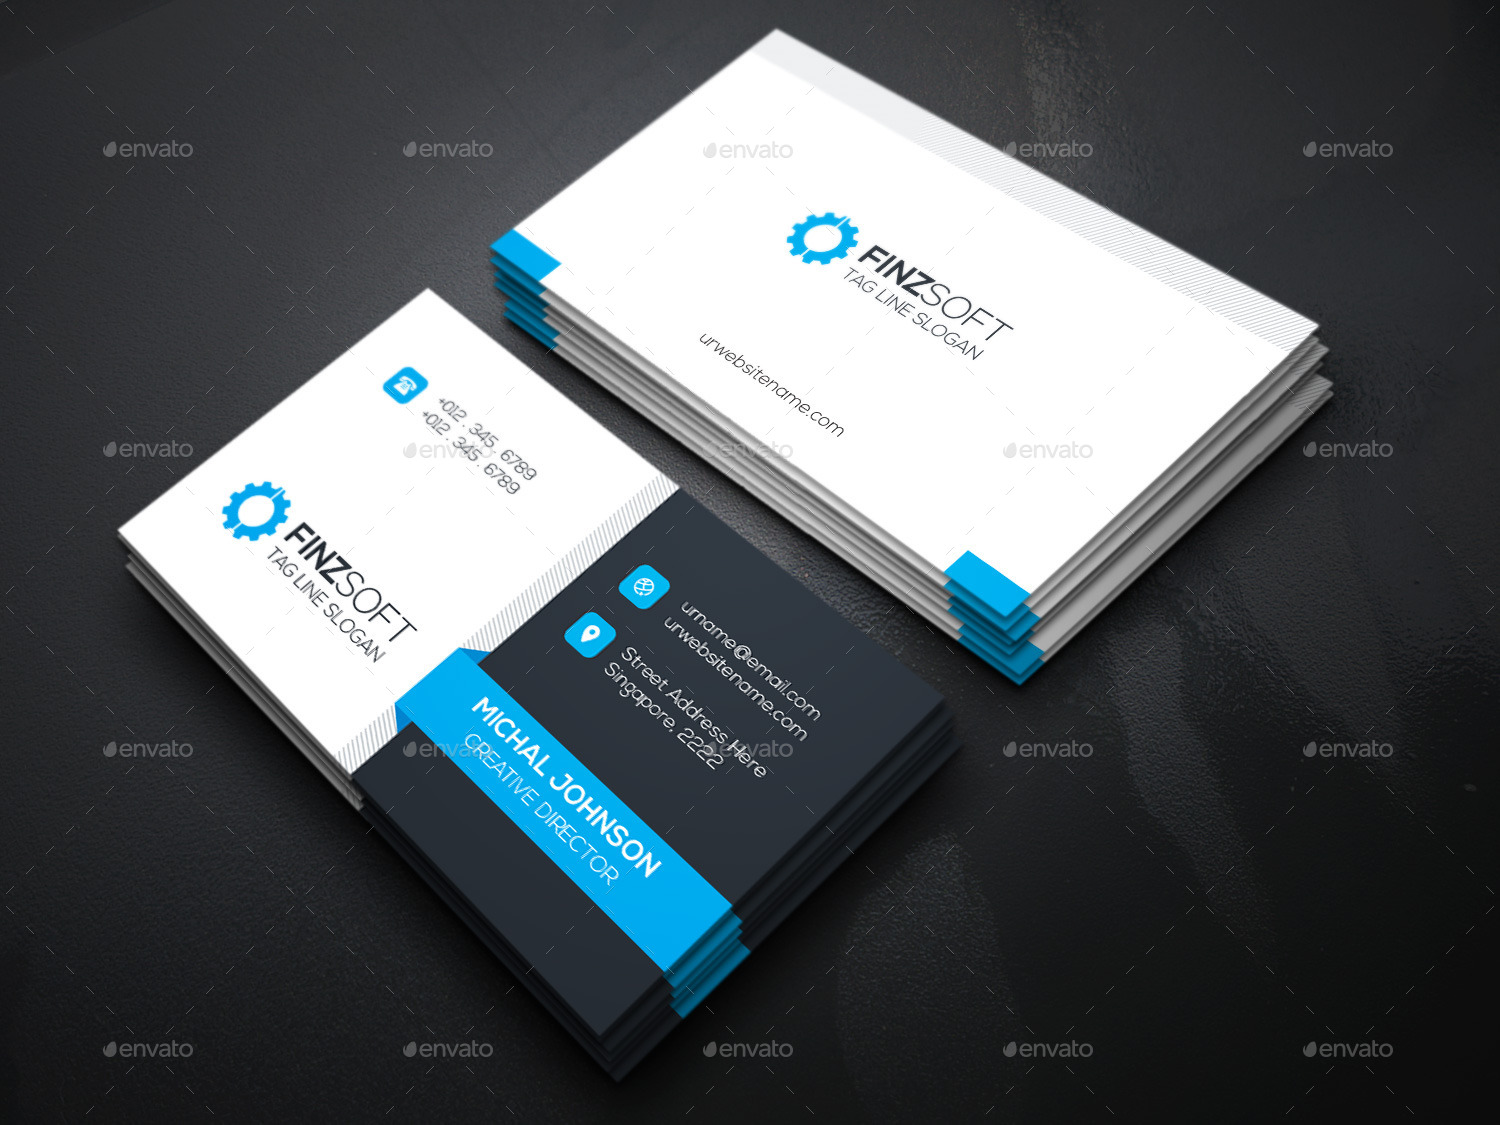 Finzsoft business cards by generousart graphicriver preview image set01technology business cardg preview image set02technology business cardg preview image set03technology business cardg magicingreecefo Gallery